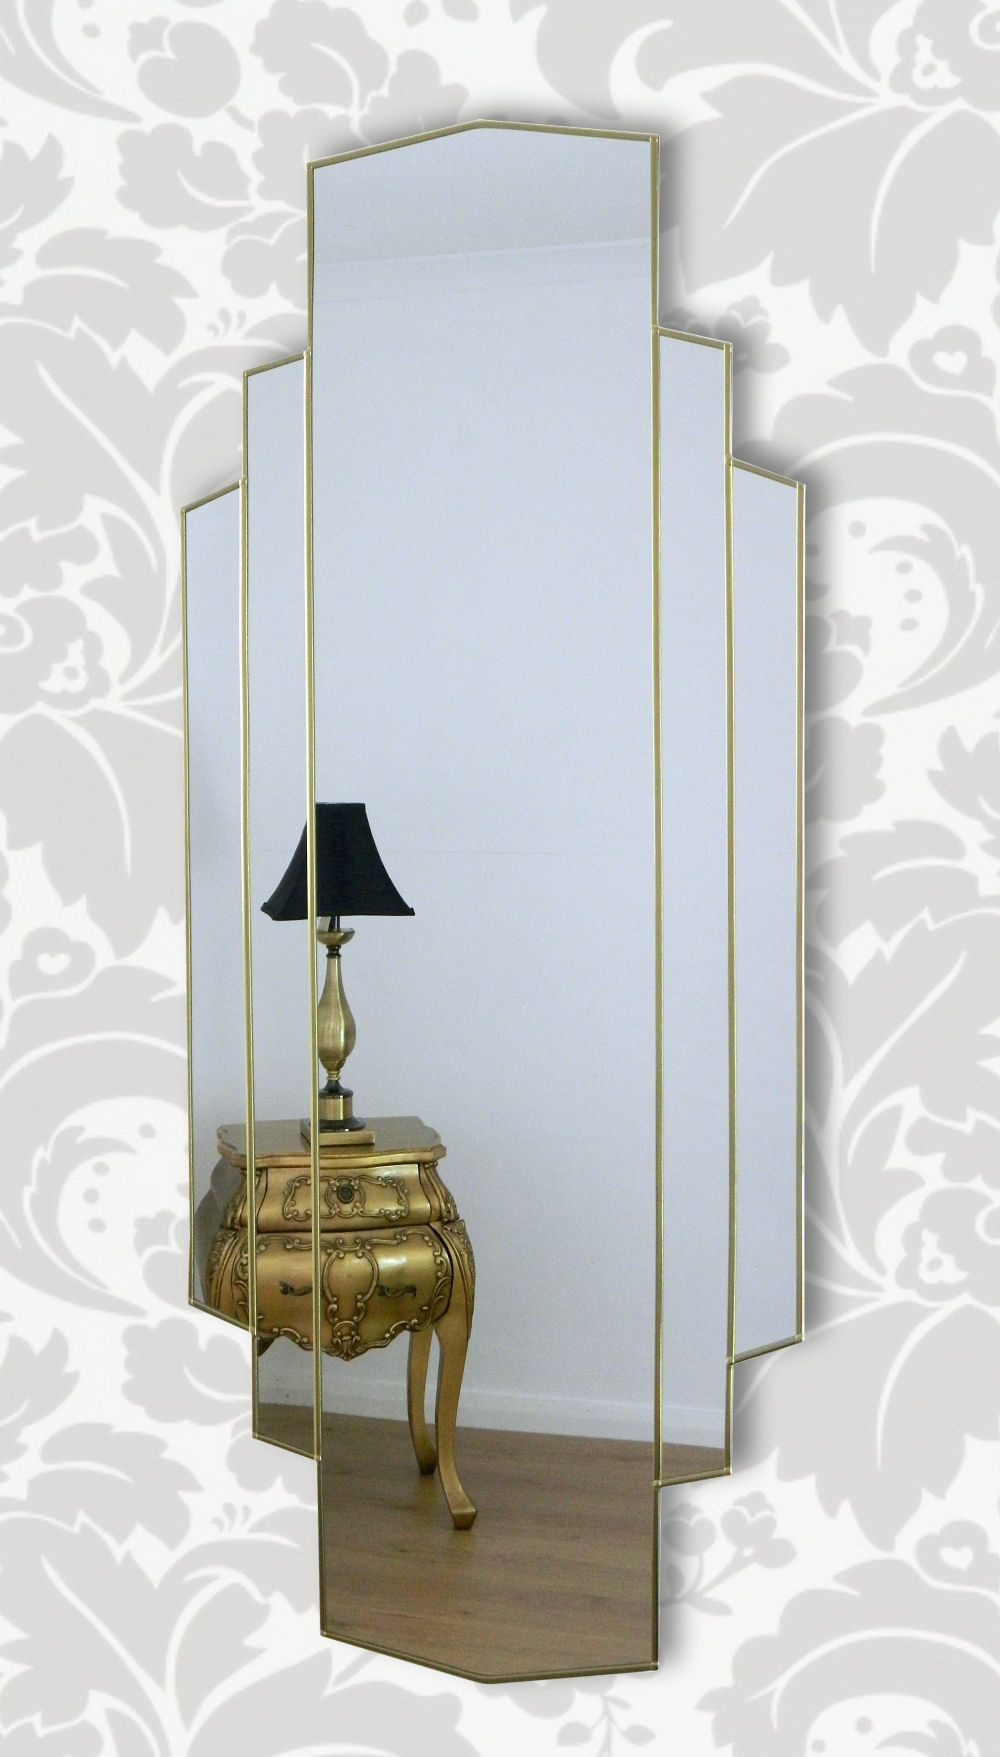 Art Deco Wall Mirrors Throughout Trendy Metro Original Handcrafted Full Length Wall Mirror In Gold (View 3 of 20)